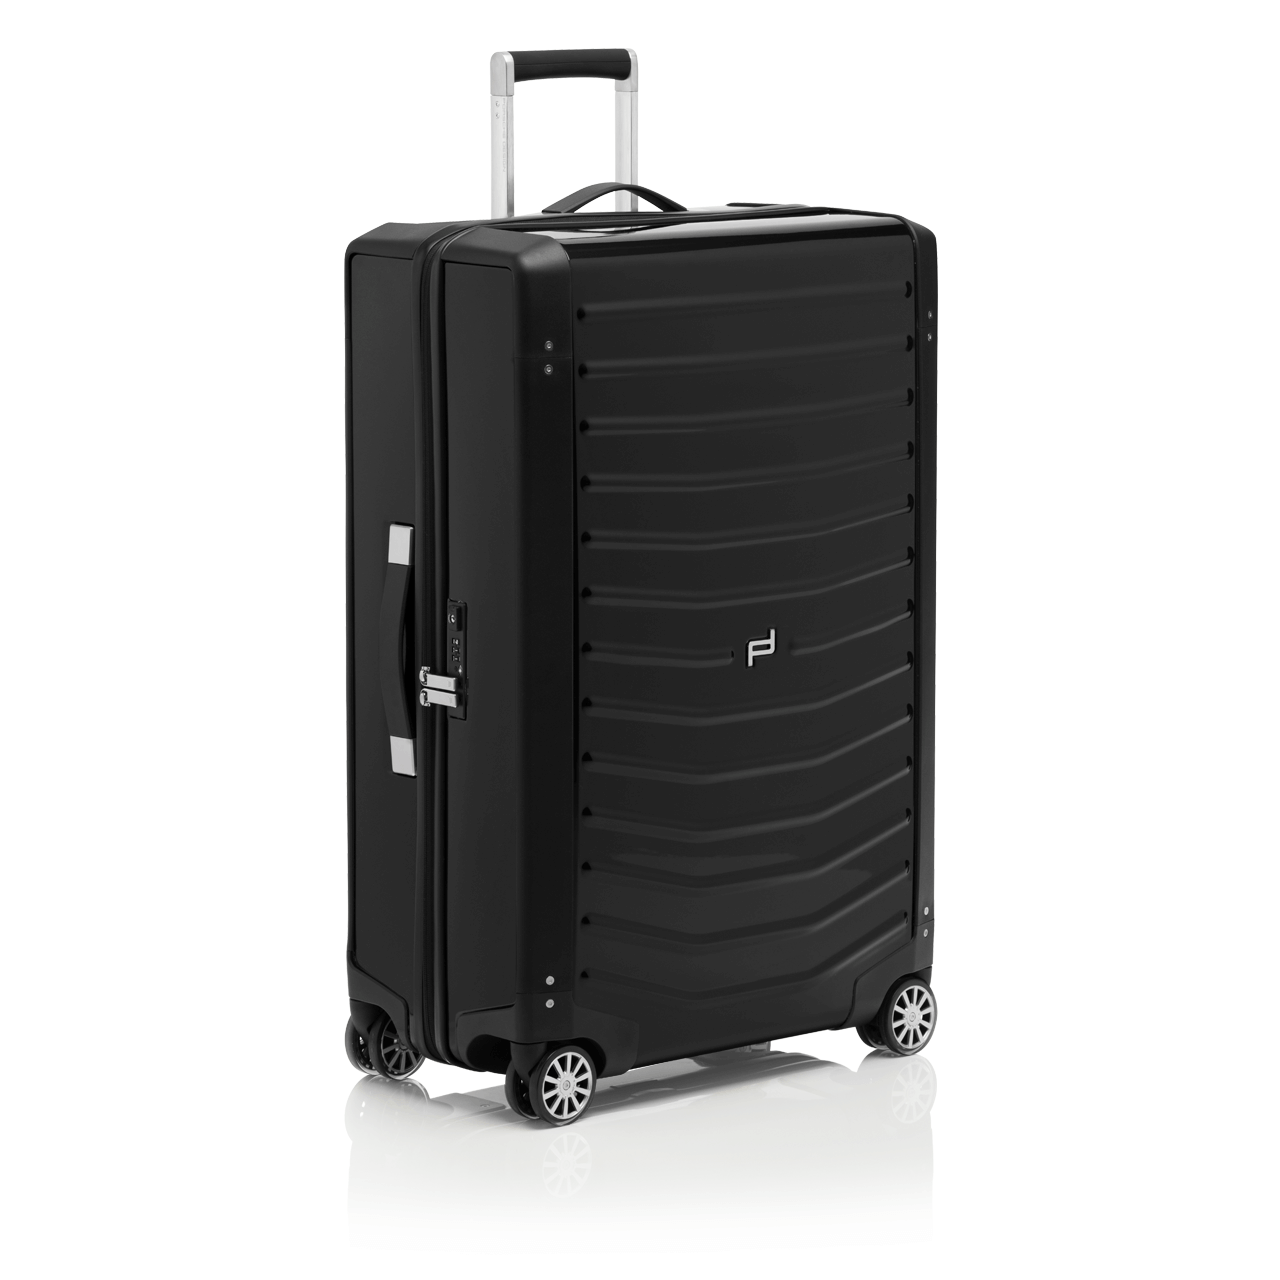 ROADSTER HARDCASE TROLLEY L - фото 1